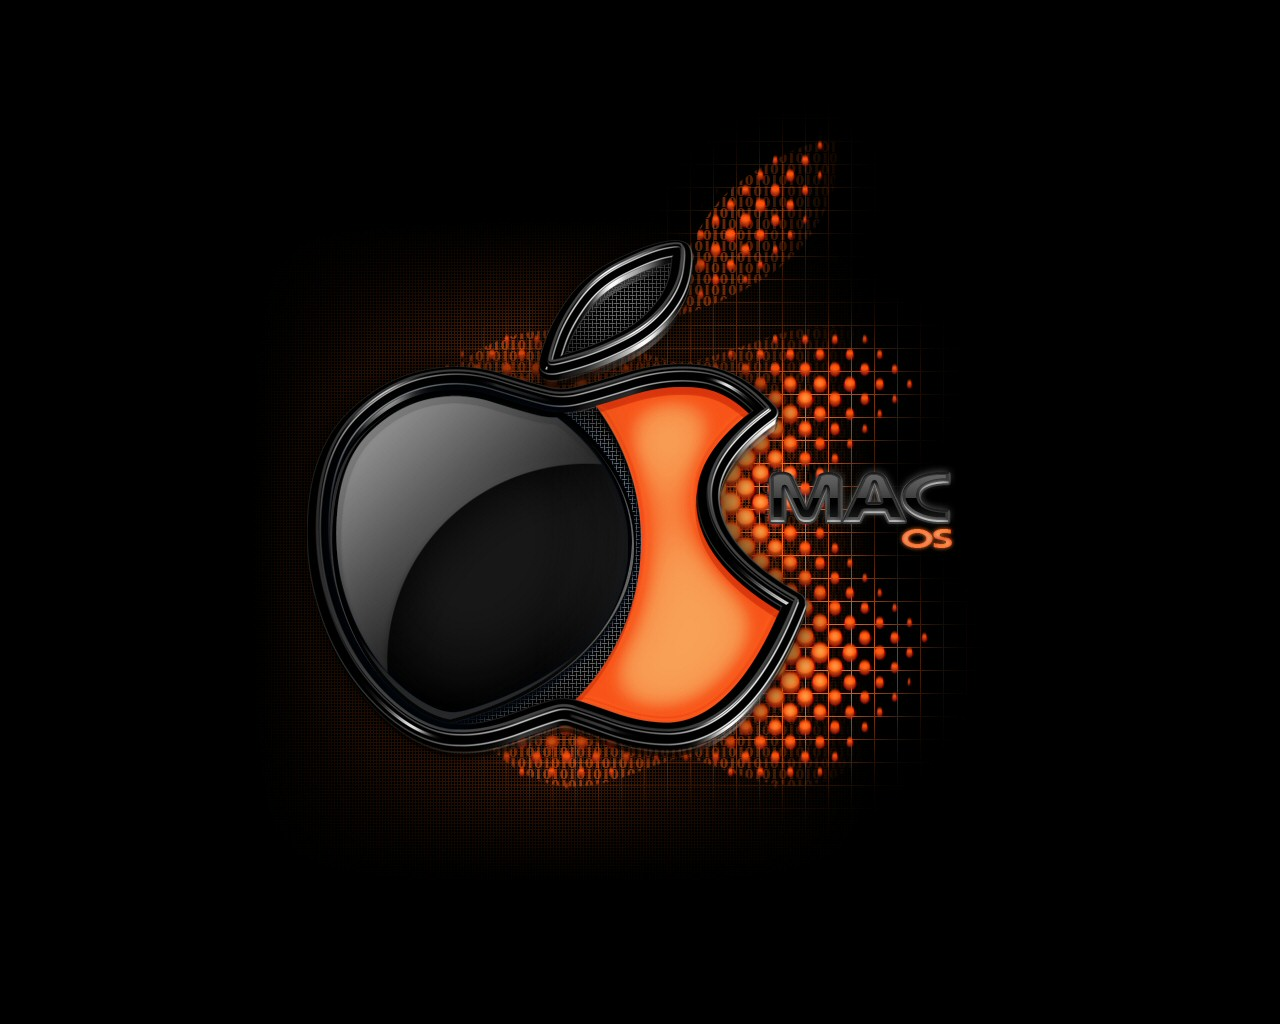 3D Mac, 3D Apple Logo. Mac Wallpapers, Wallpapershd Wallpapers